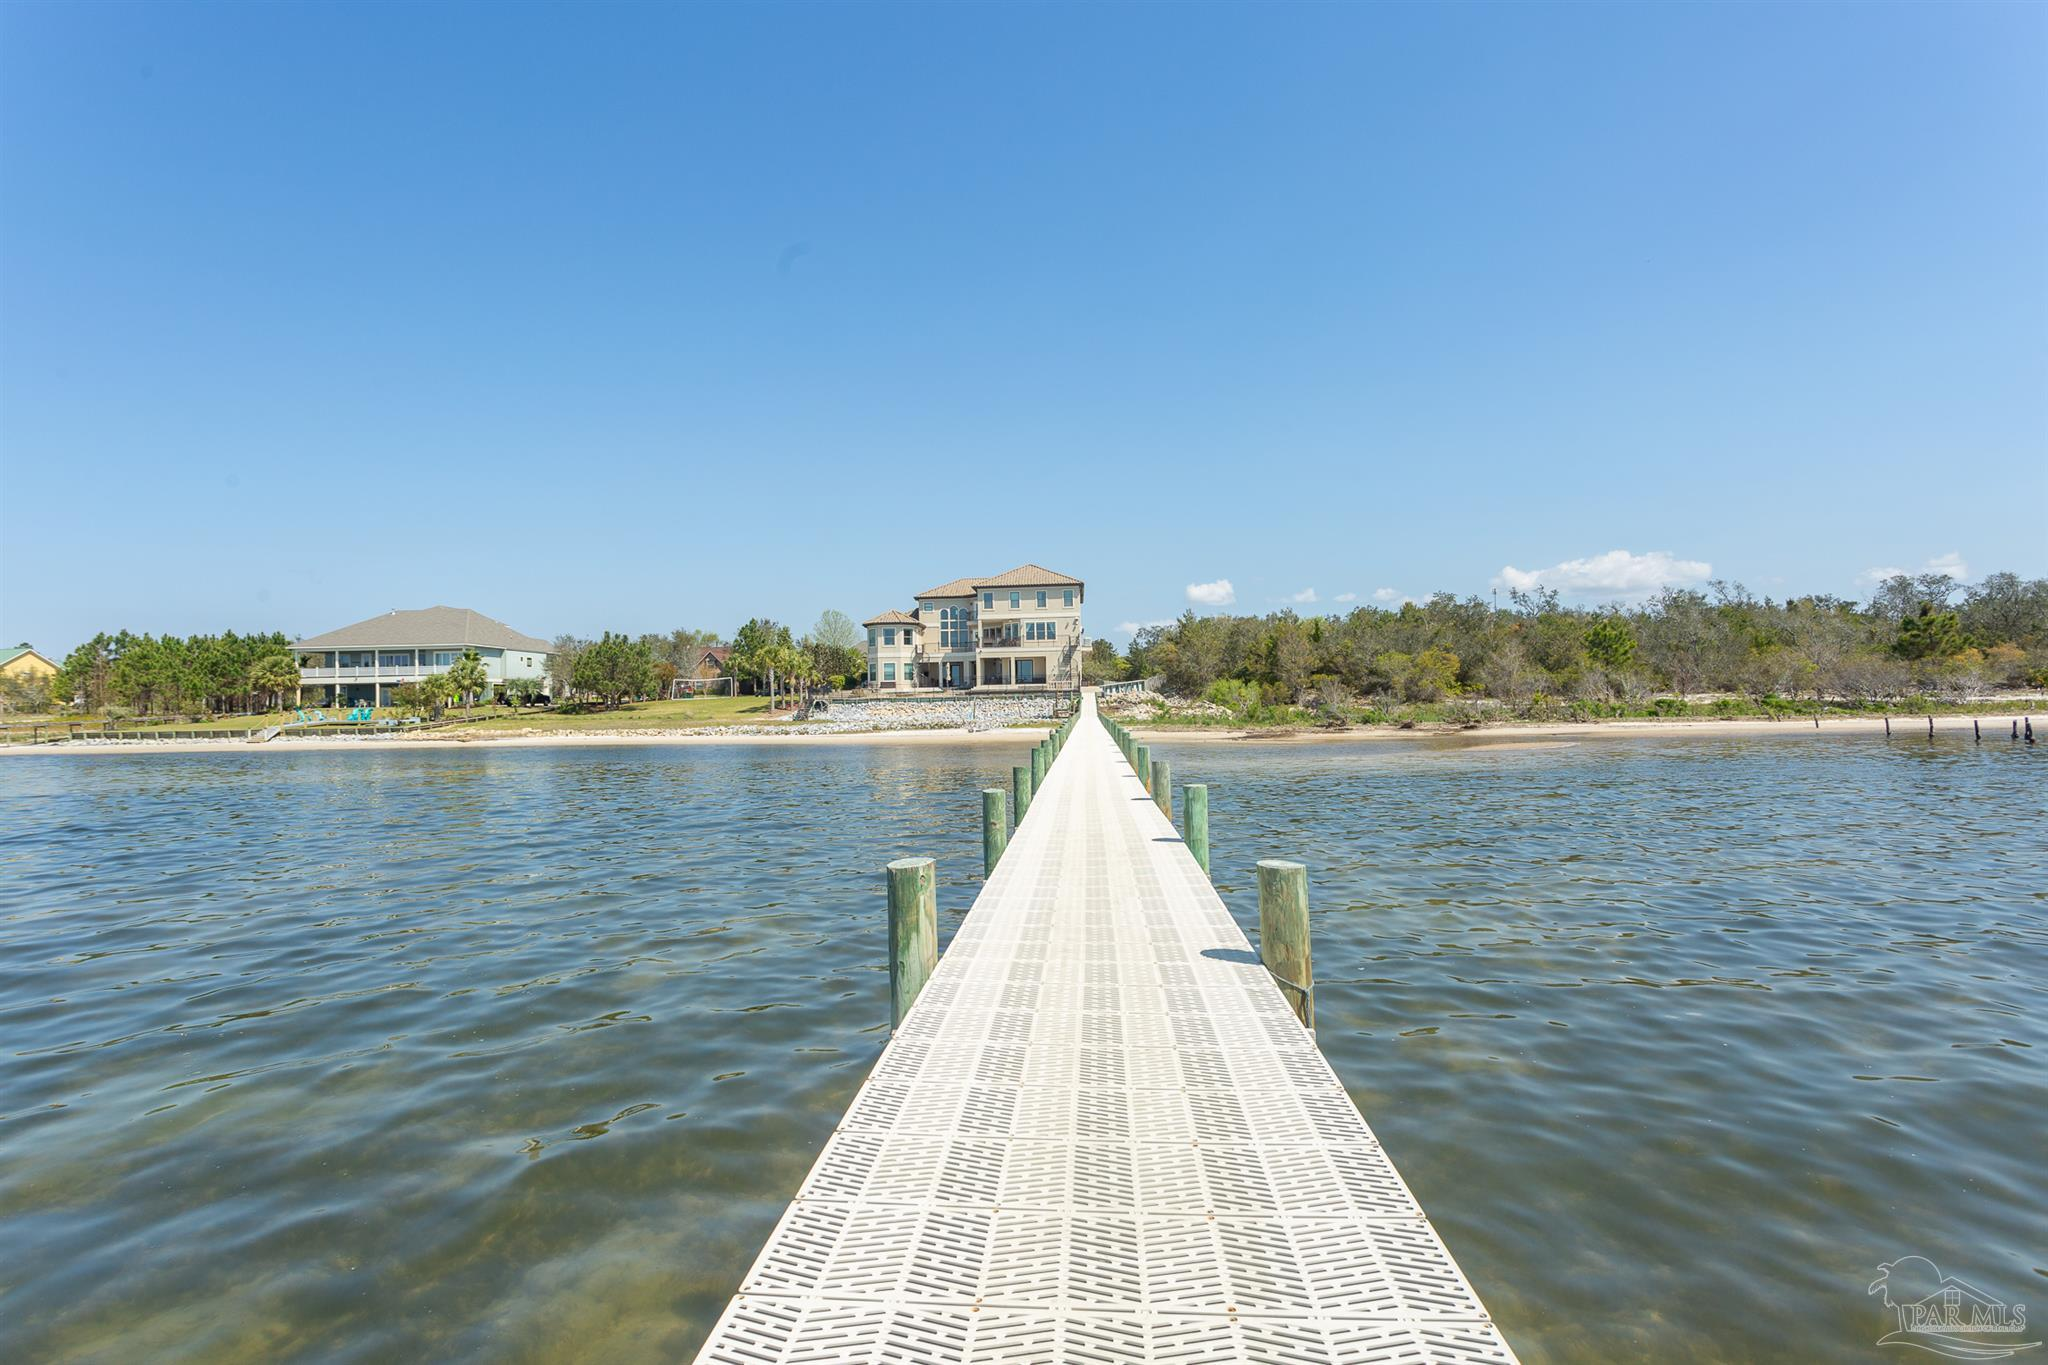 The water is always in view—and in reach—in this 9,400 square foot, six-bed, seven-bath custom-built home in one of Navarre's most coveted gated communities. Relax and enjoy the breathtaking sights of Santa Rosa Sound from the wraparound second-story balcony overlooking a spacious ozone-filtered pool and hot tub. A spiral staircase leads to the multi-level patio, providing access to your own private beach and dock, perfect for spur-of-the-moment outings by boat, paddleboard, or jet-ski.  Need a break from the sun? Your three-row home theater with surround sound is the perfect place to cool down. The spacious home gym has room for all your equipment, plus a mirrored wall and large sliding glass doors overlooking the pool and sound. On the main level, the great room offers stunning views of the water through arched two-story windows, complemented by a marble fireplace with ceiling-height over mantel. Between the 273-bottle wine cellar and chef's kitchen with granite countertops, stainless steel appliances, custom vent hood, and dual ovens, you'll always be ready to entertain. Live the salt life in style! Call me to schedule your showing today.